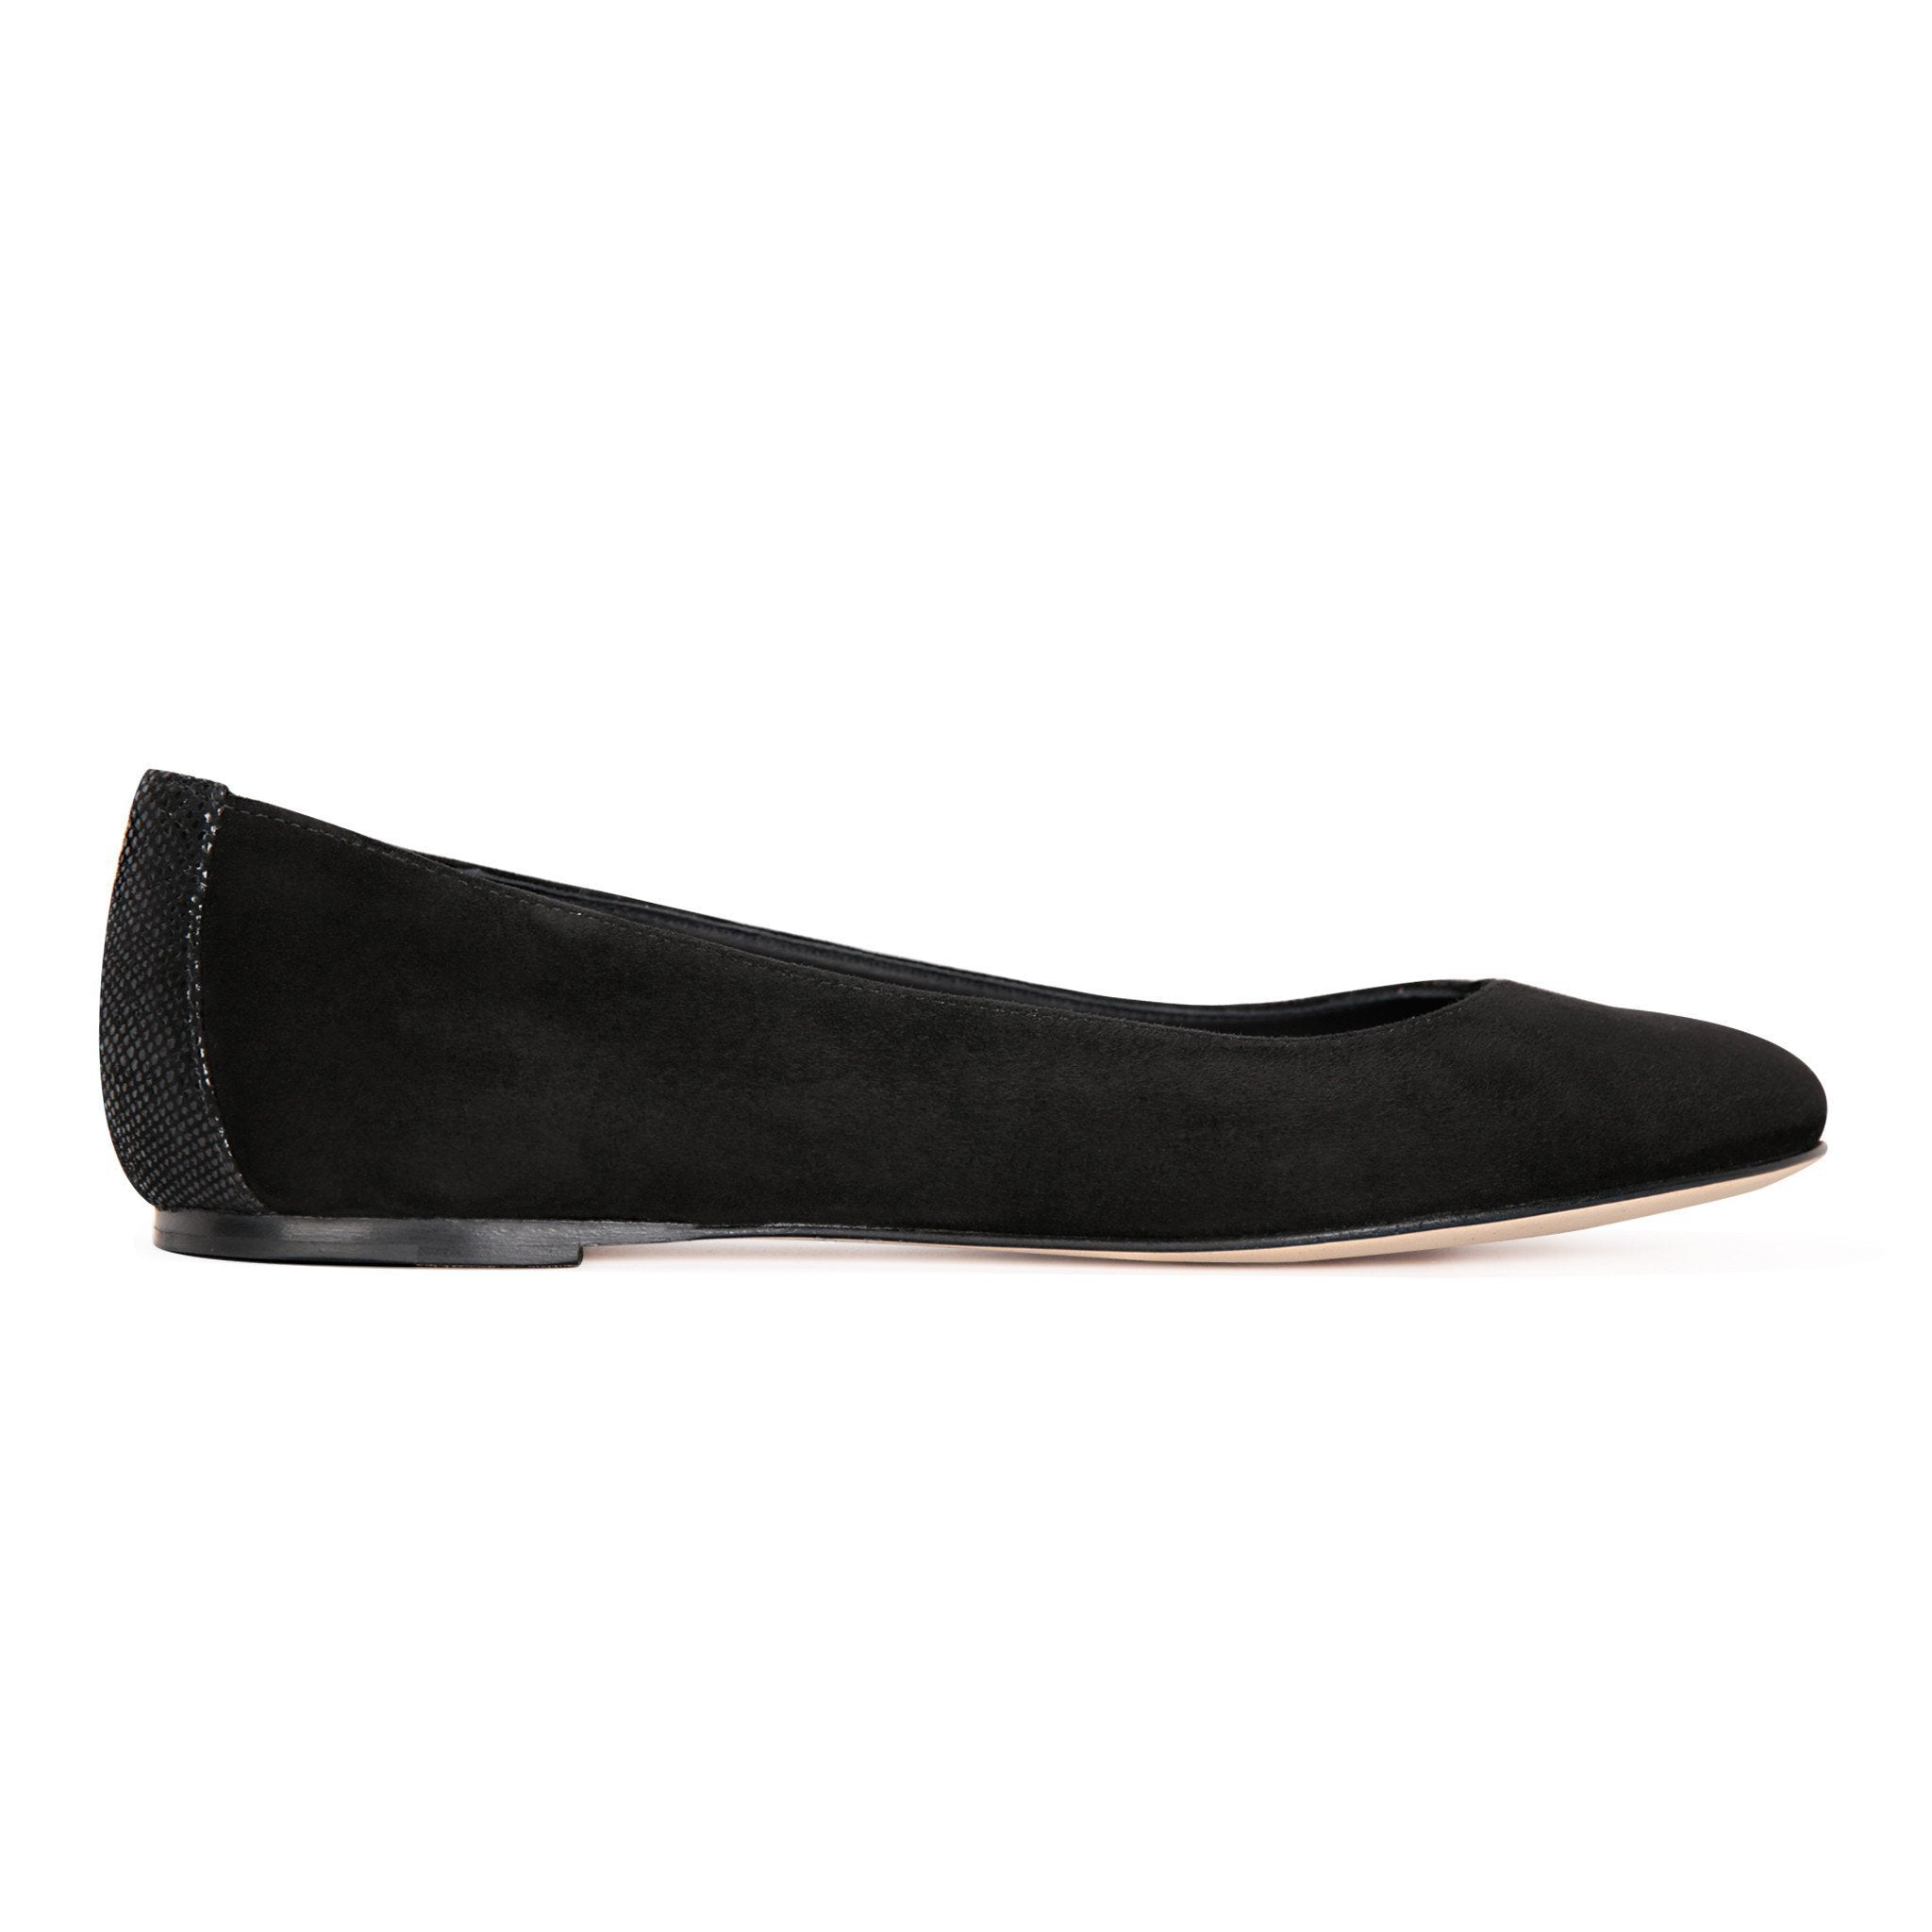 VENEZIA - Velukid Nero + Karung Back, VIAJIYU - Women's Hand Made Sustainable Luxury Shoes. Made in Italy. Made to Order.